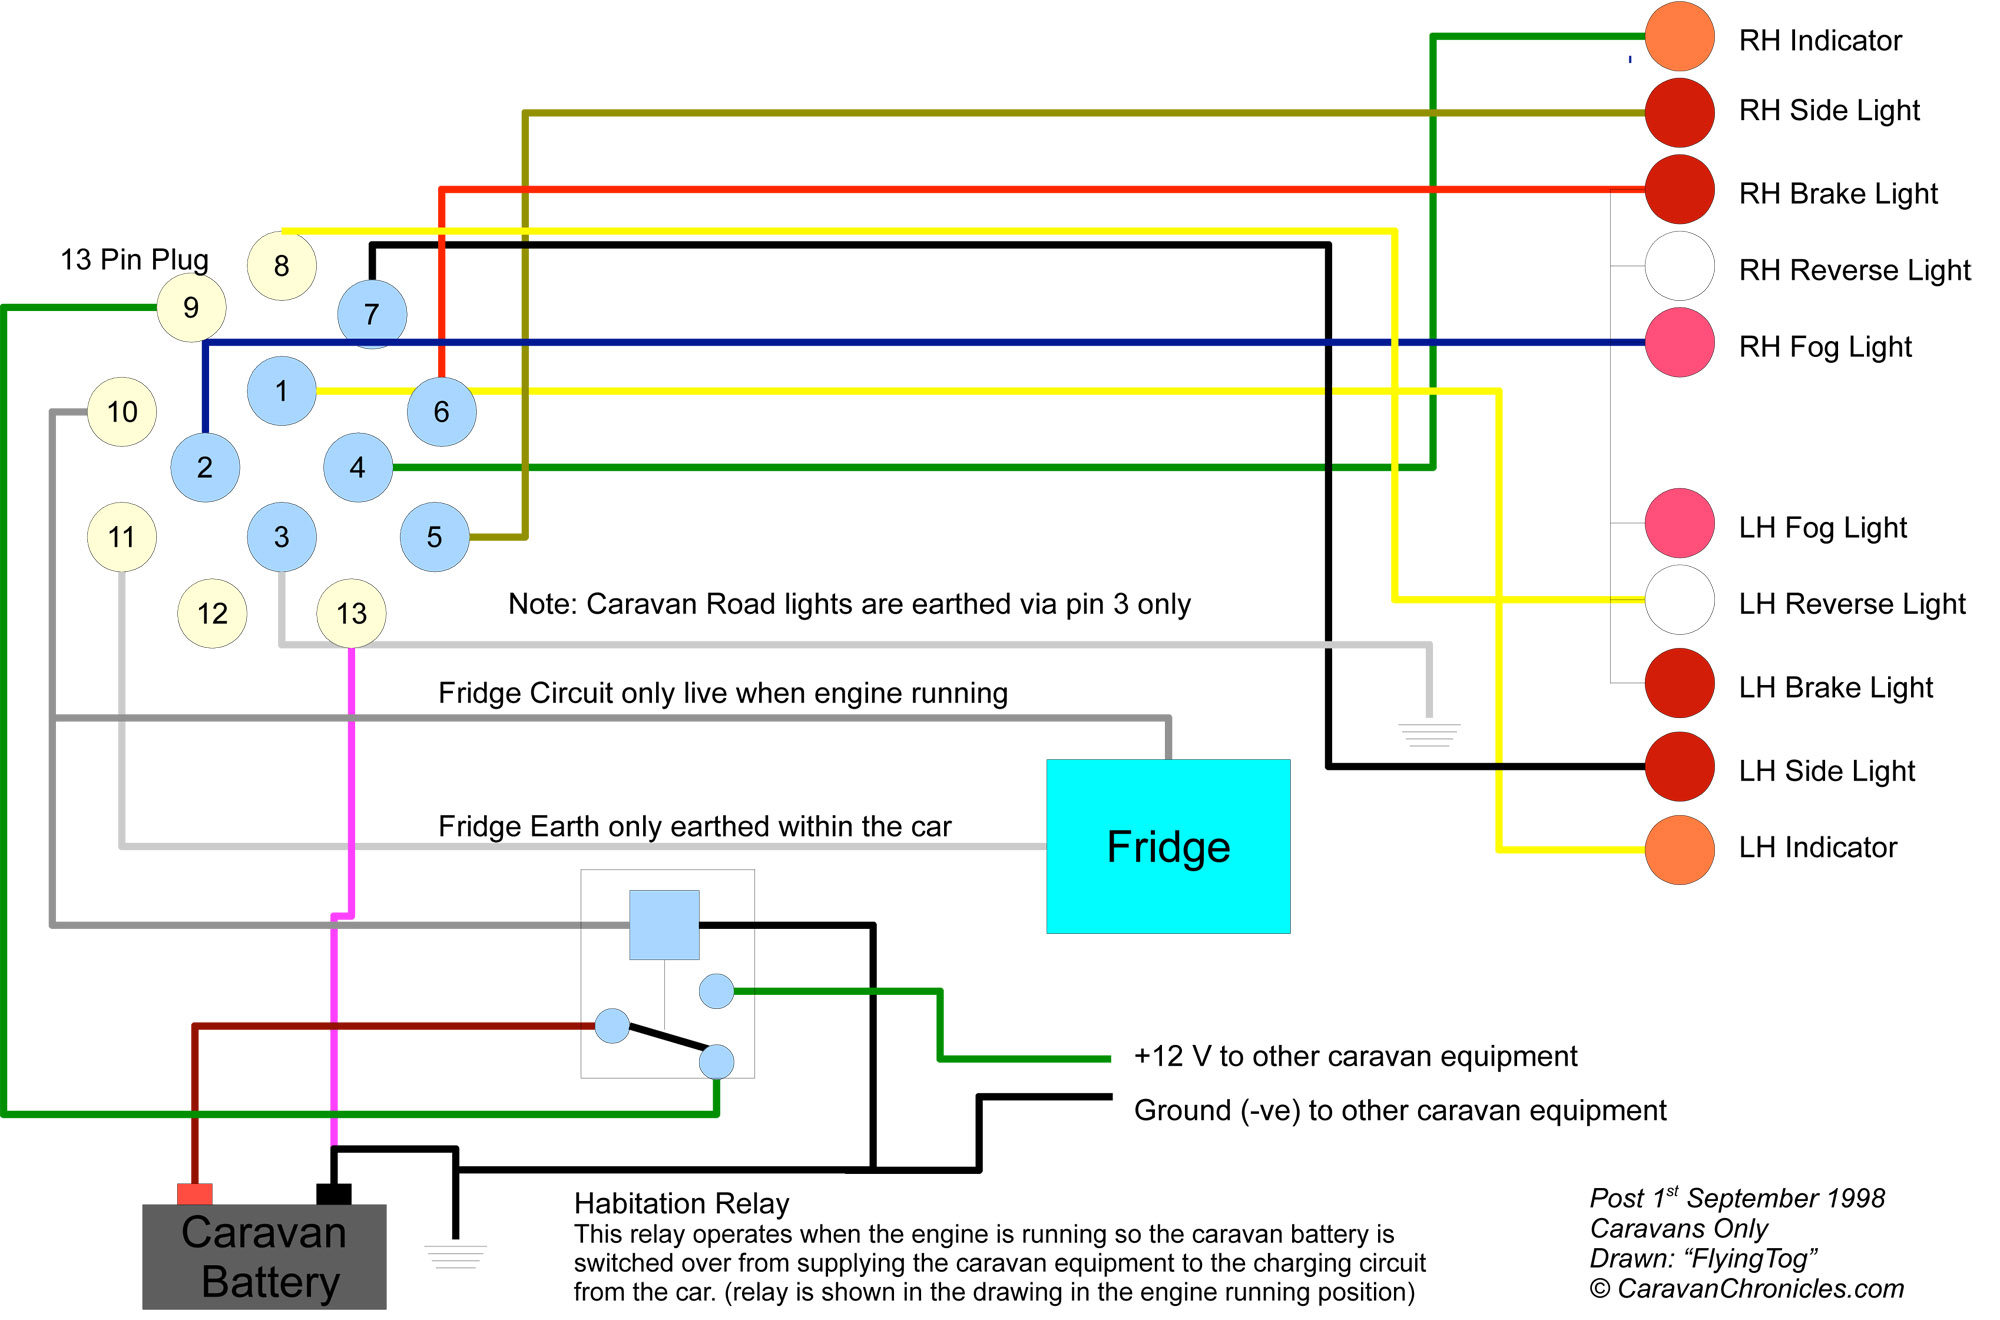 Understanding Caravan And Tow Car Electrics Chronicles House Electrical Wiring Diagrams Further Australia Light Switch Typical 13 Pin Connected Showing Habitation Relay Only Want To Power The Fridge